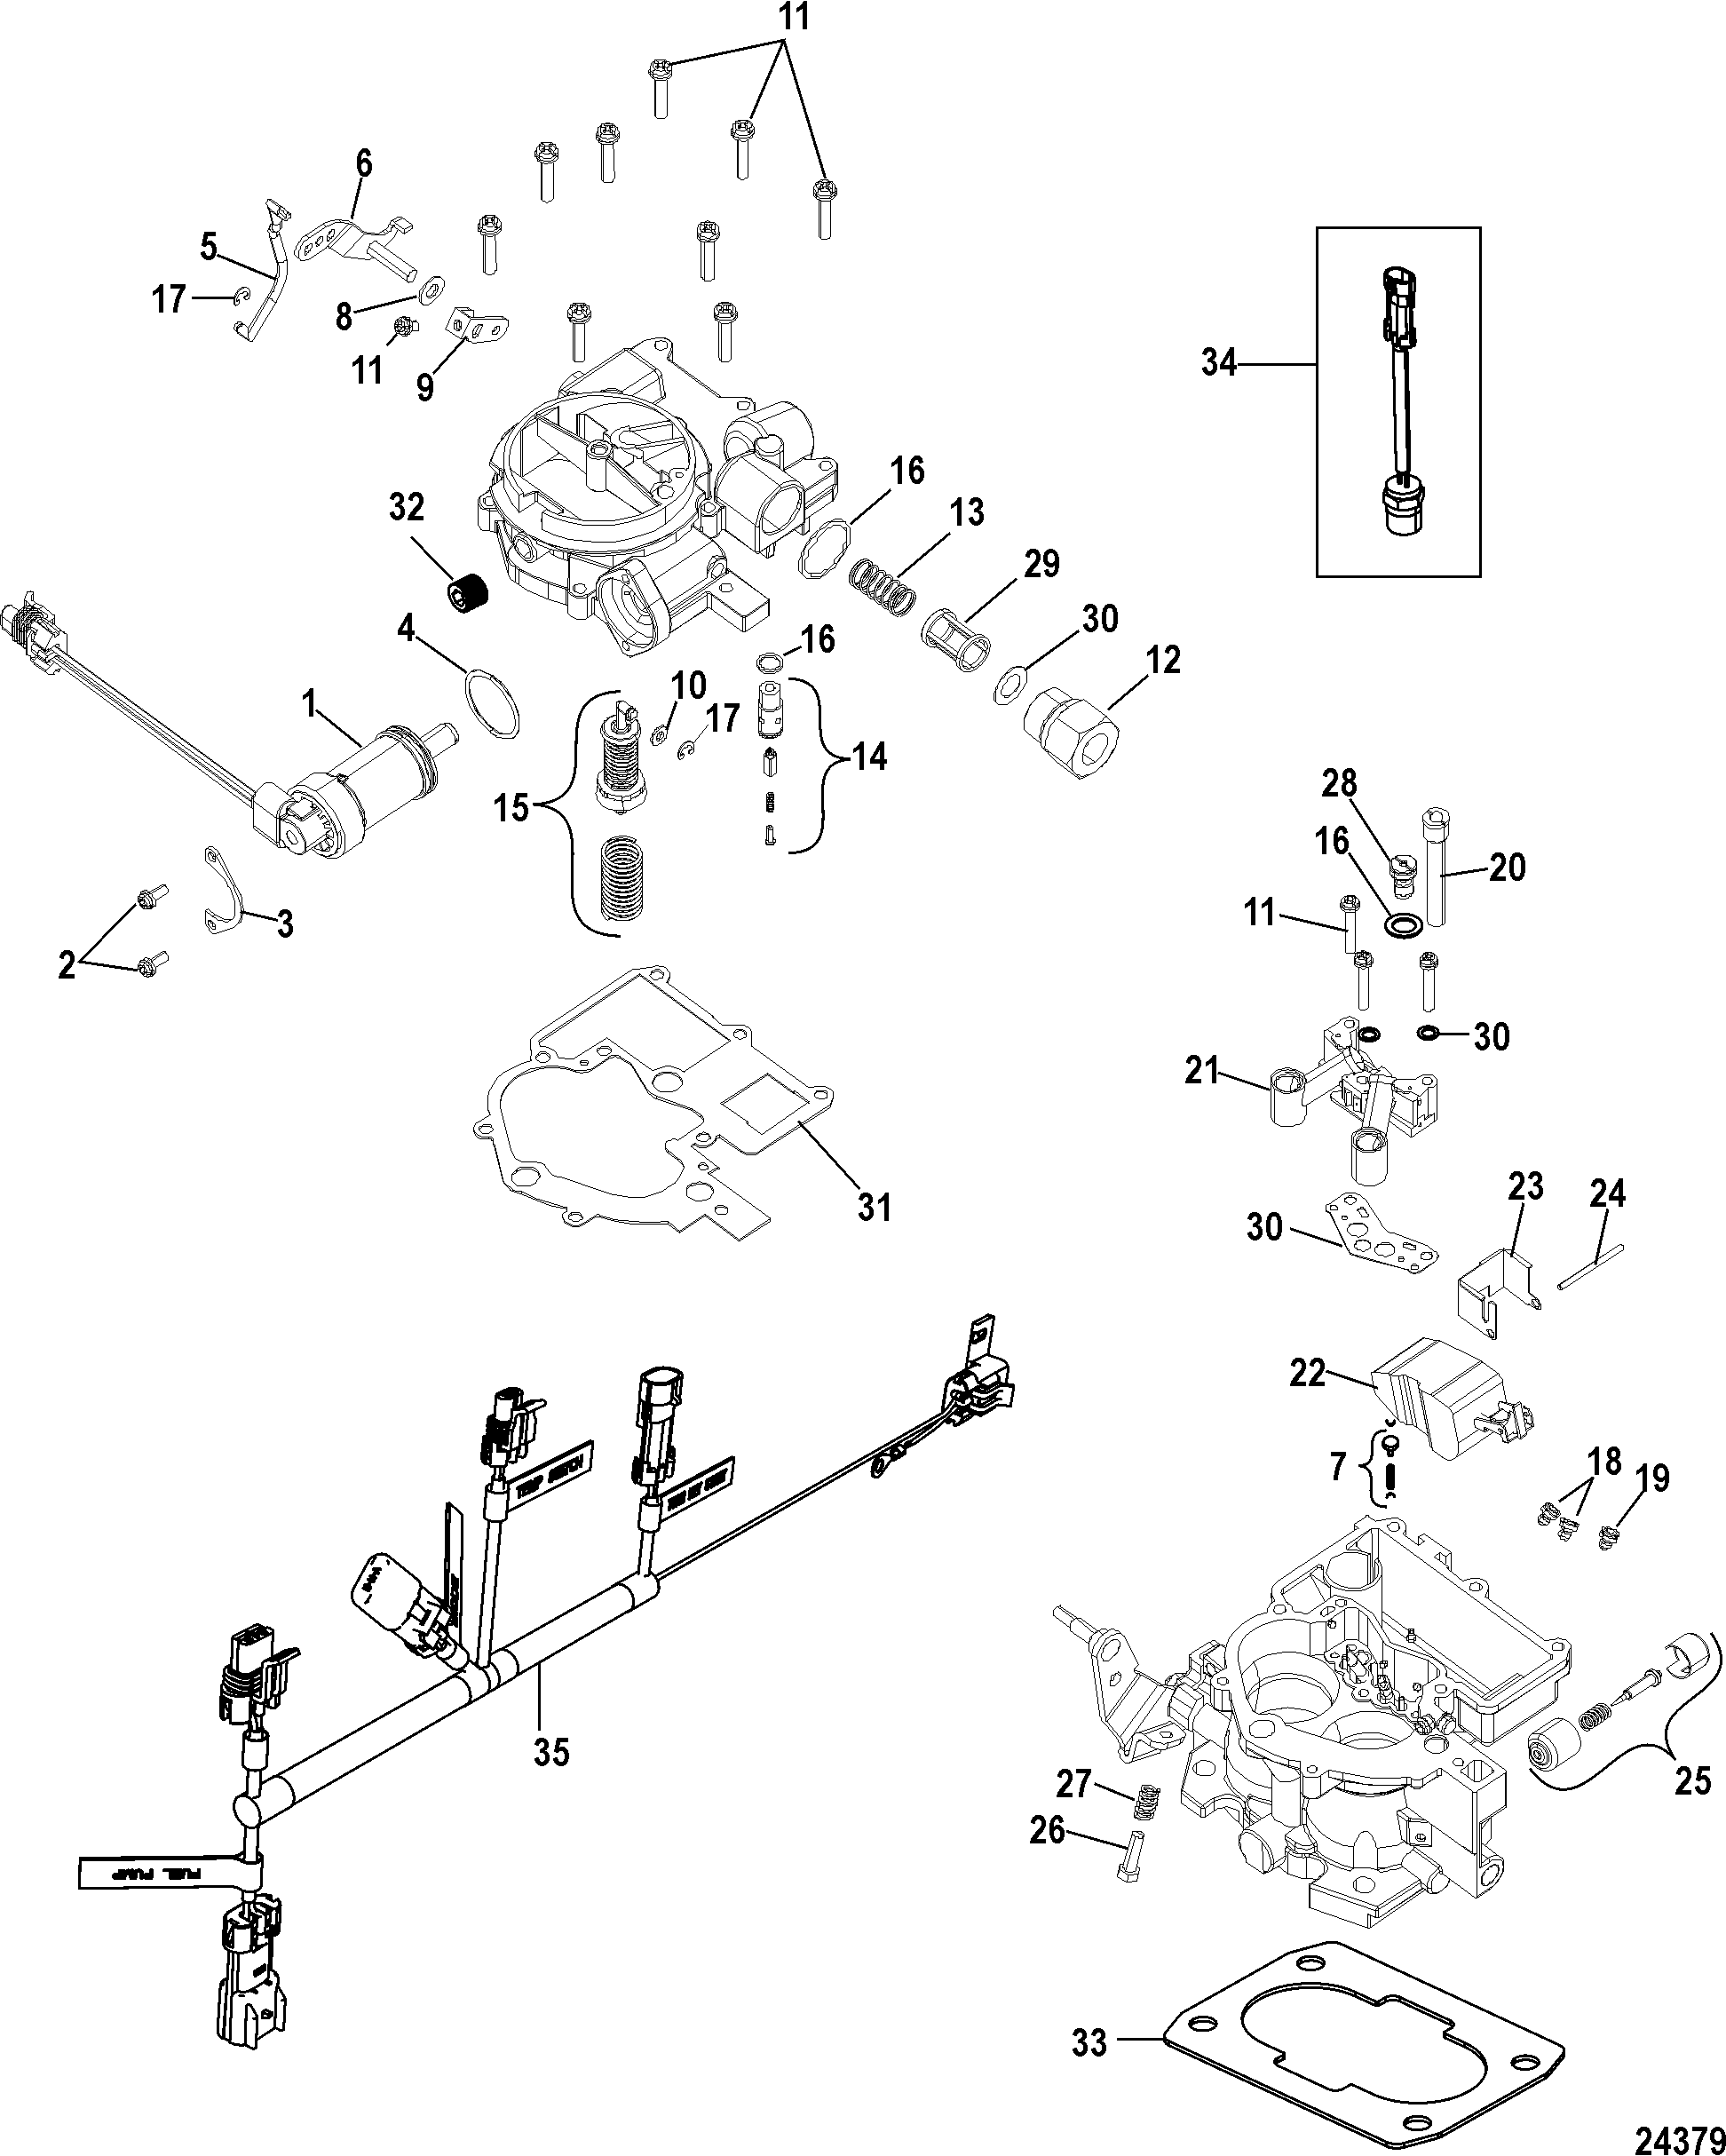 Carburetor Kit Tks For Mercruiser 5 0l 5 7l Sterndrive